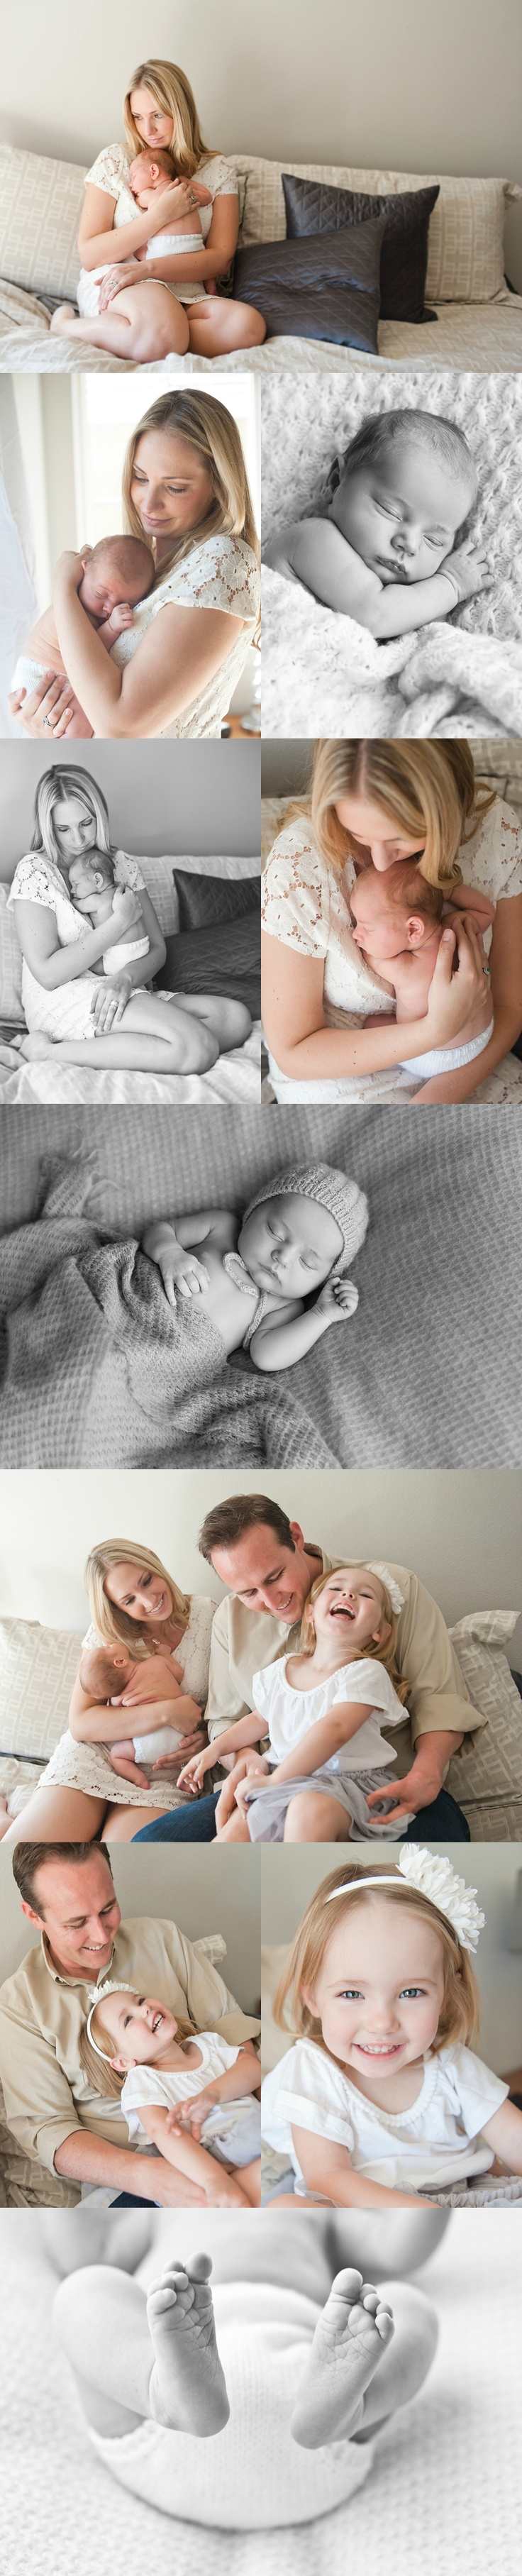 Orange County Baby newborn lifestyle Photographer jen gagliardi